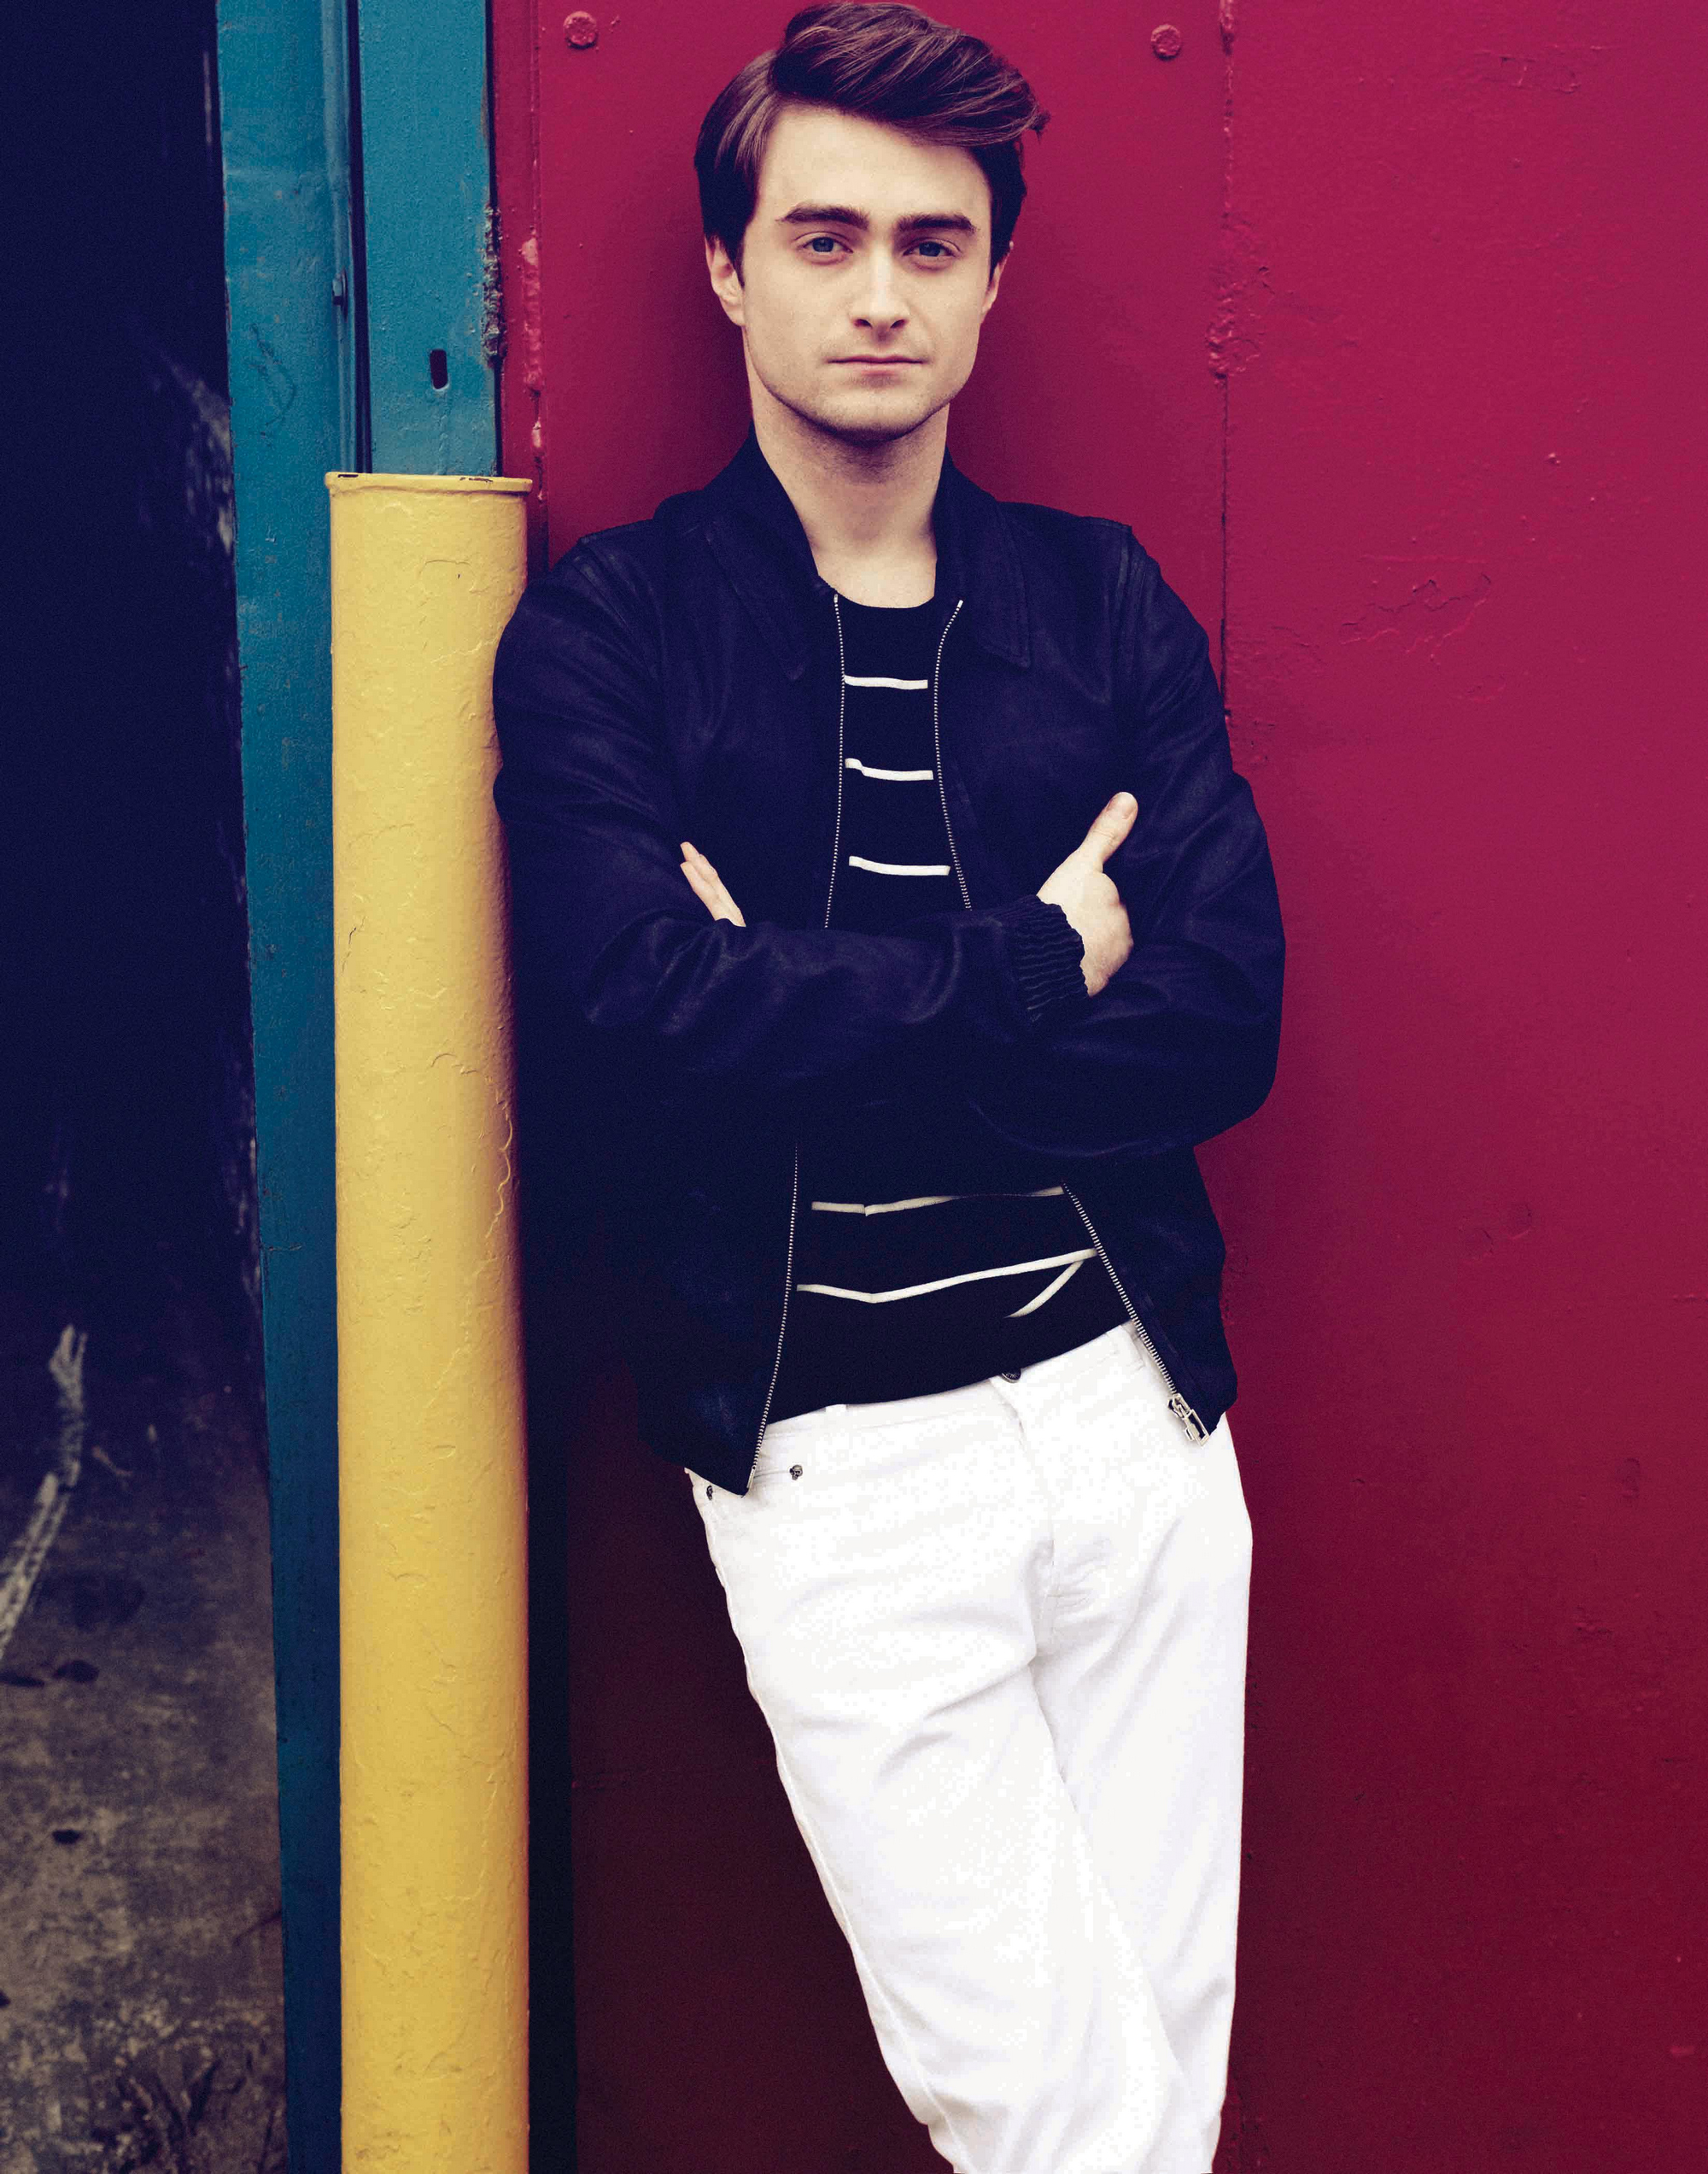 Daniel Radcliffe Photoshoot Pictures HD Images Gallery